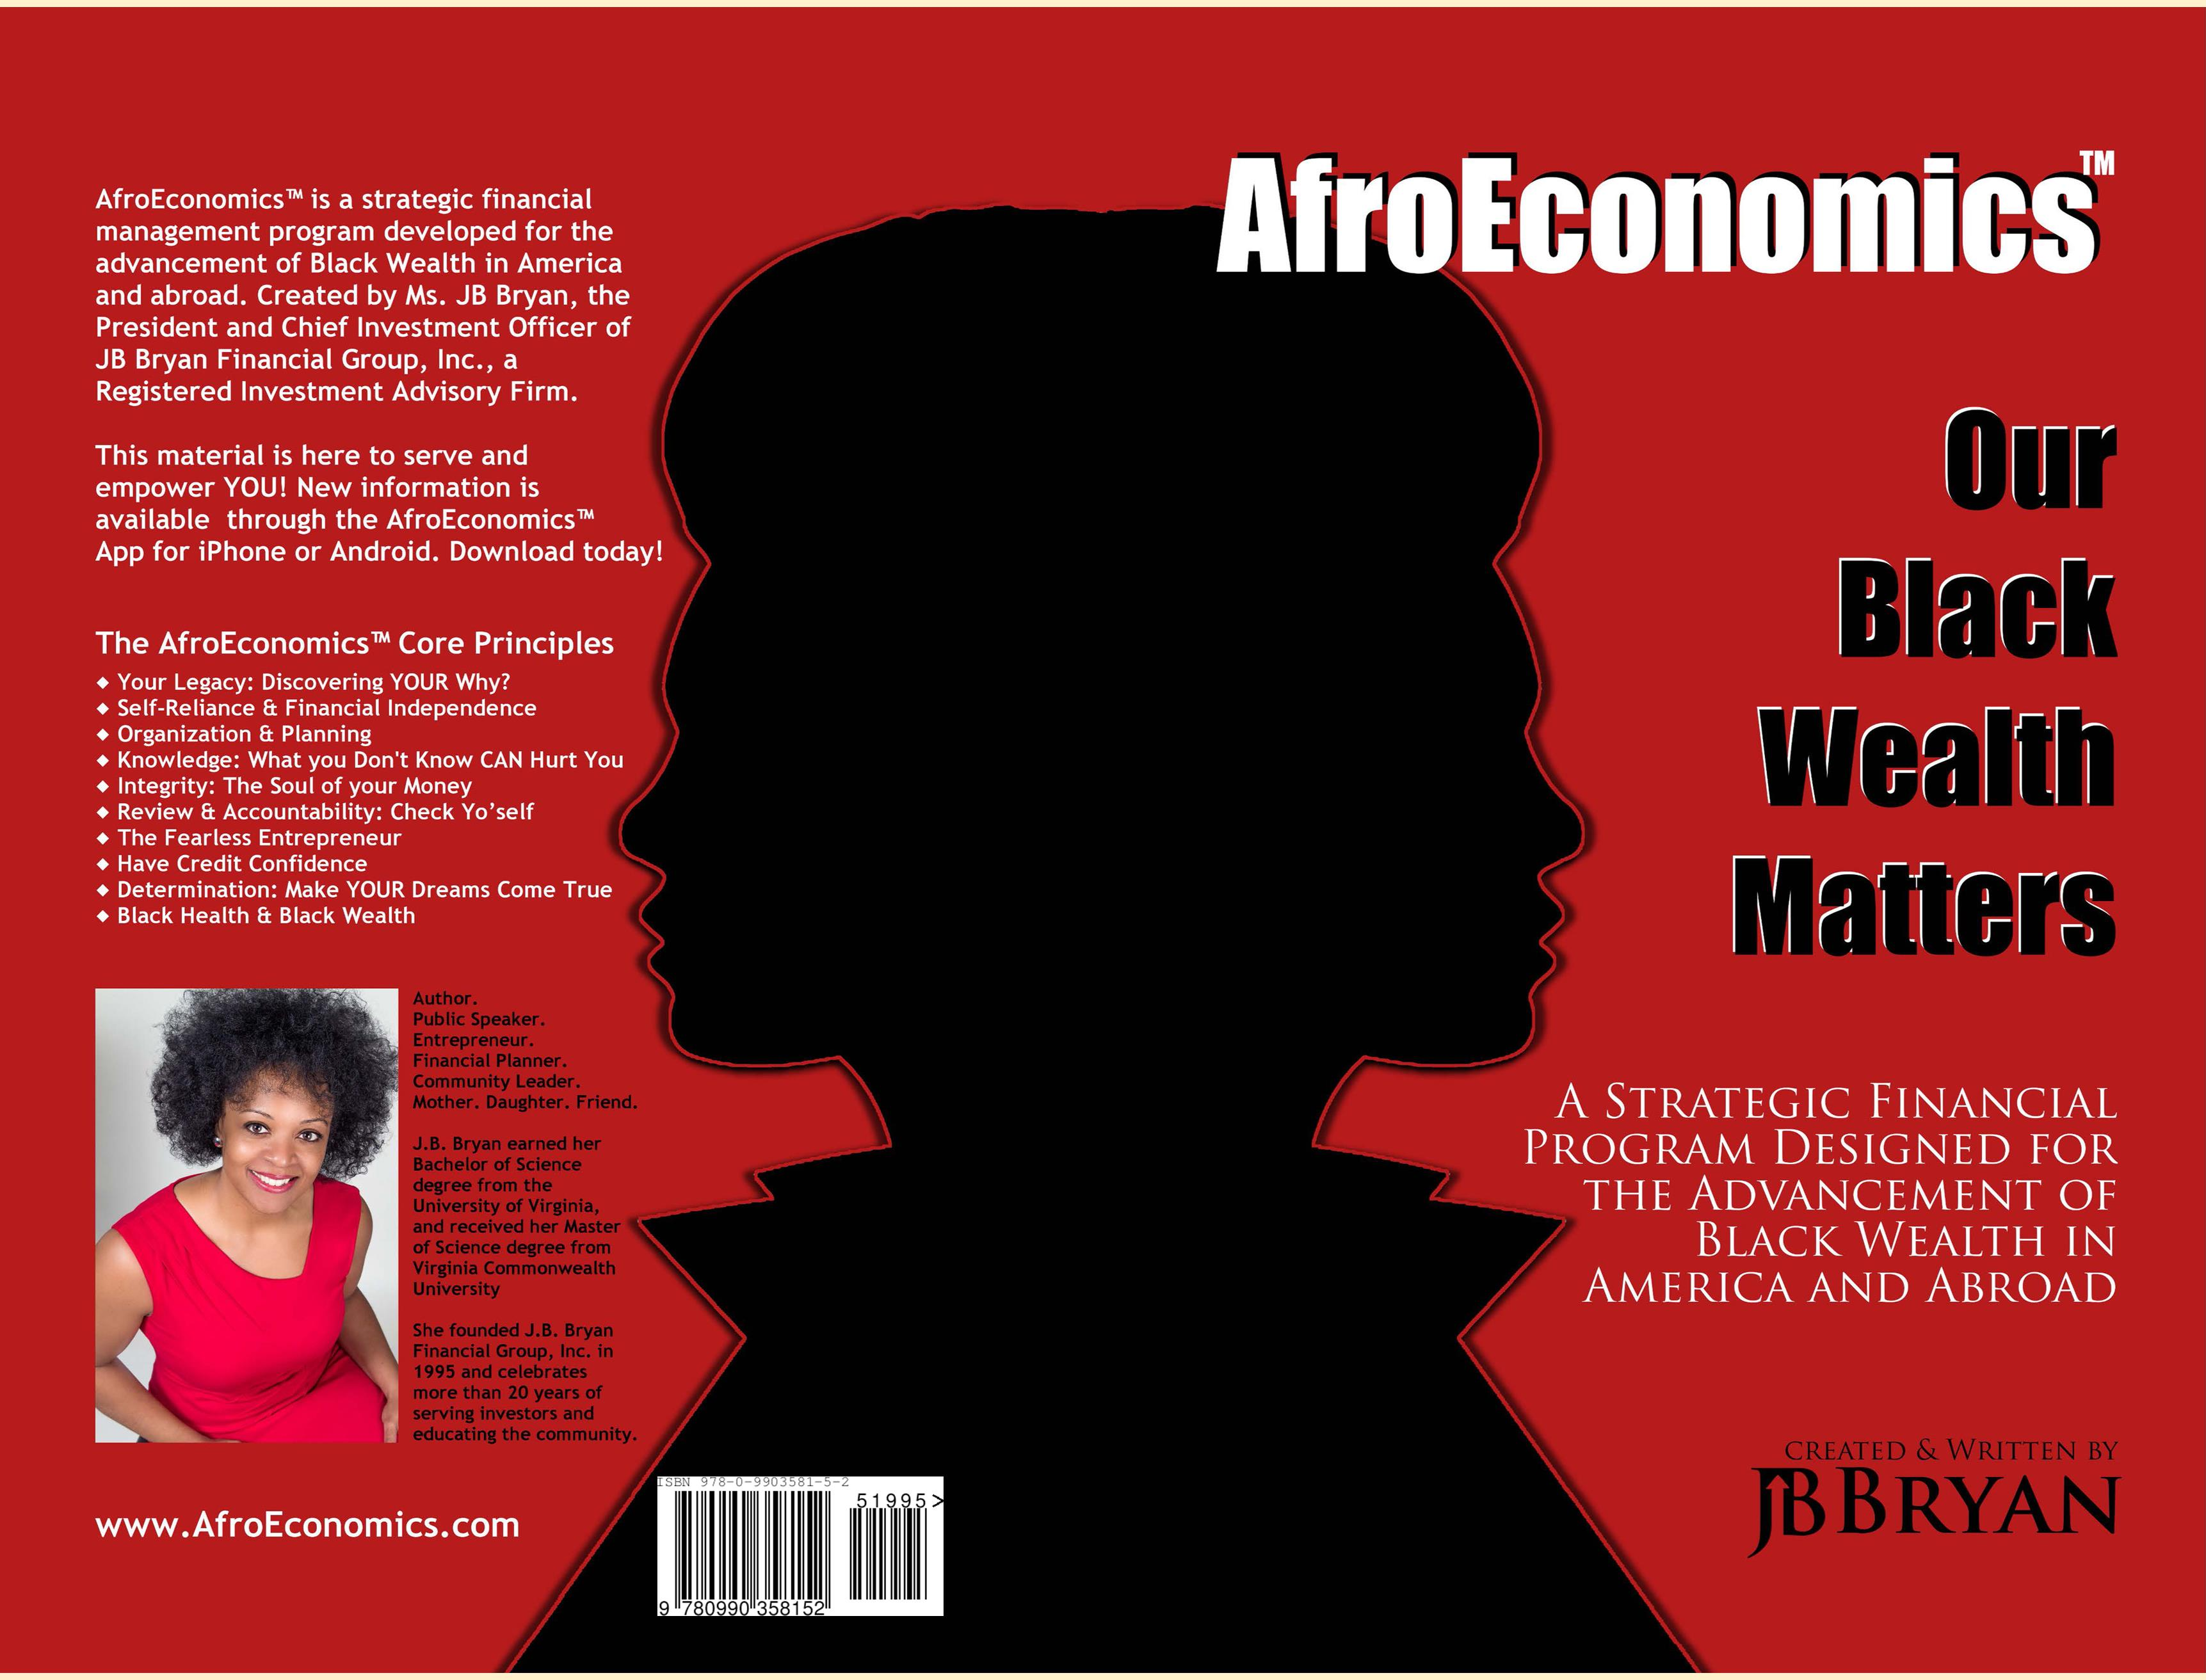 AfroEconomics: Our Black Wealth Matters cover image